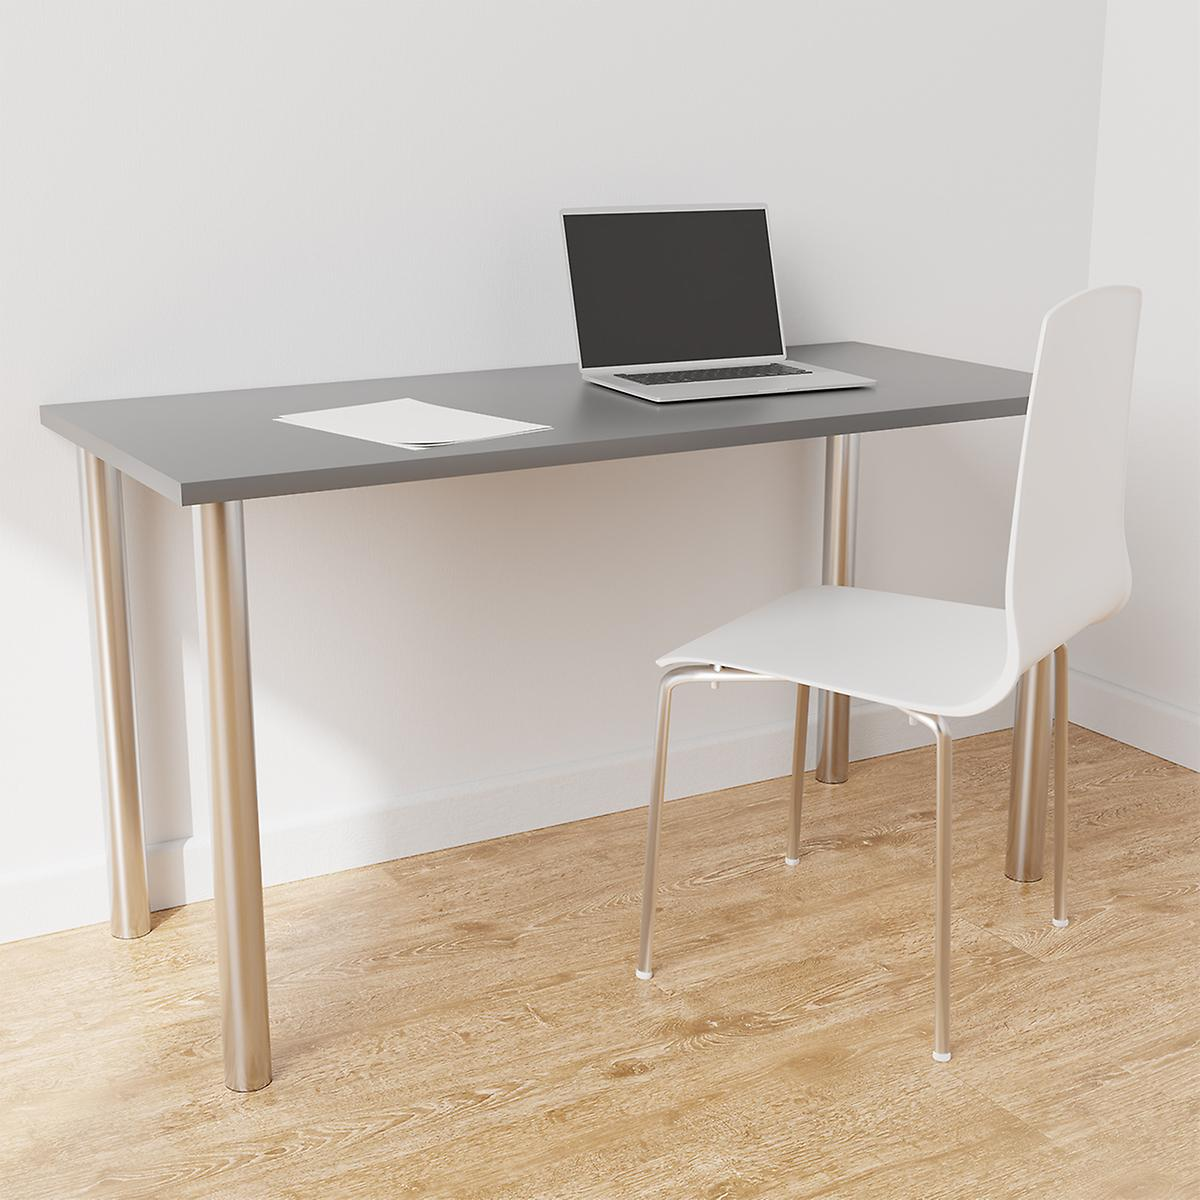 Platinum & Grey Elfa Desk